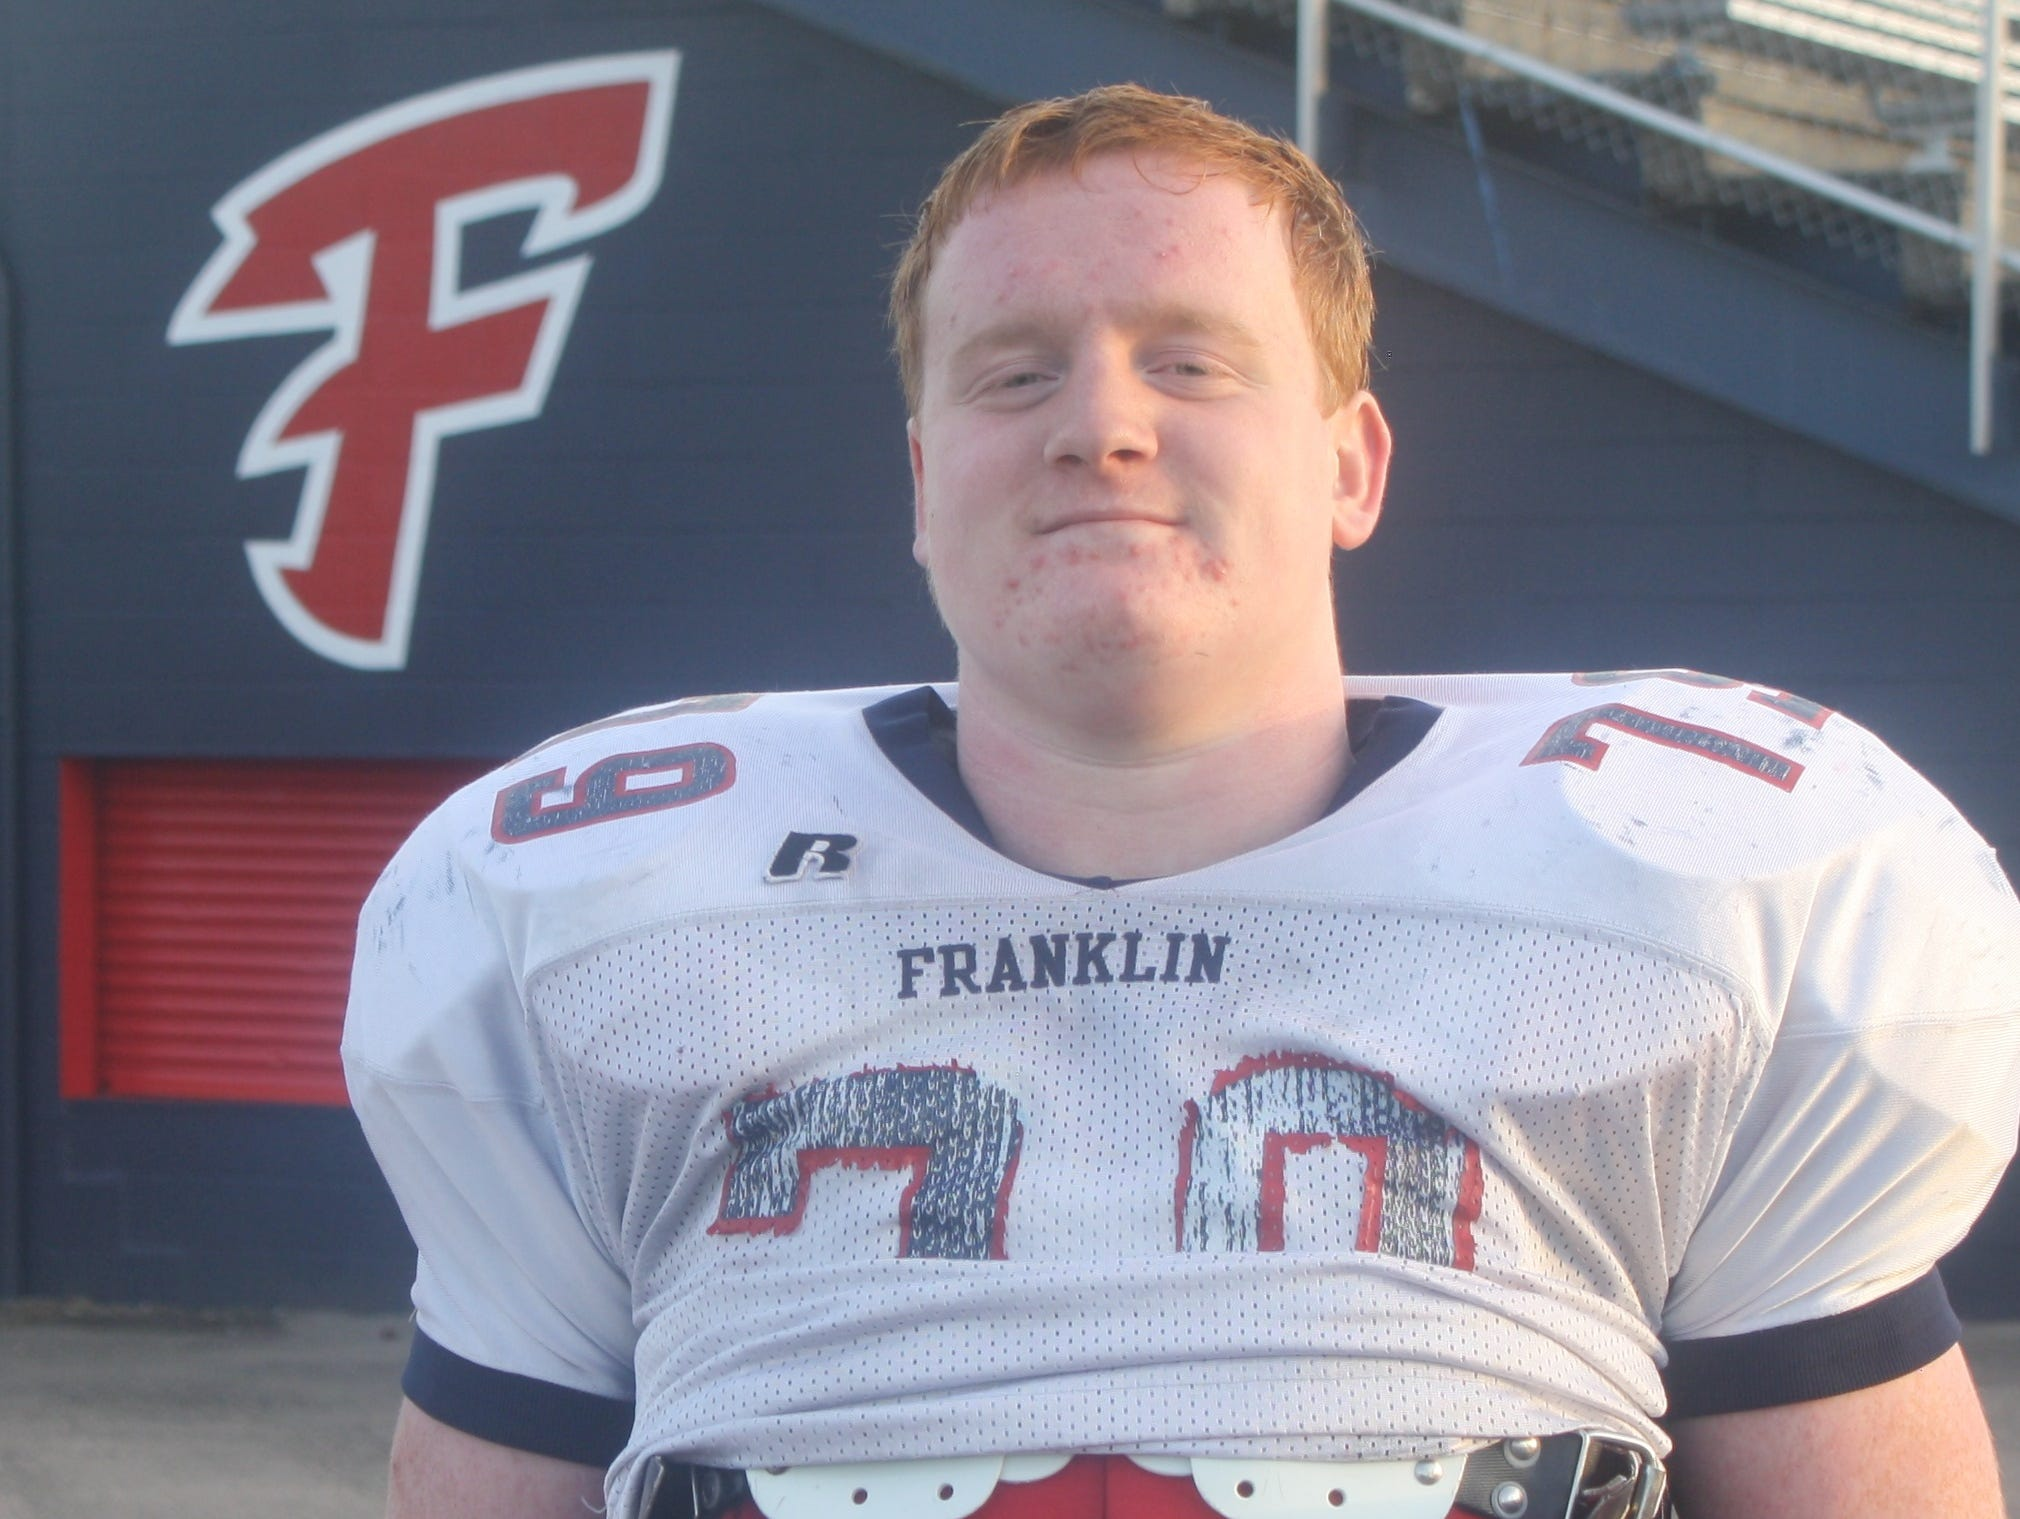 Senior defensive tackle Ryan Tracy has been one of the anchors of Livonia Franklin's much-improved defense this fall.